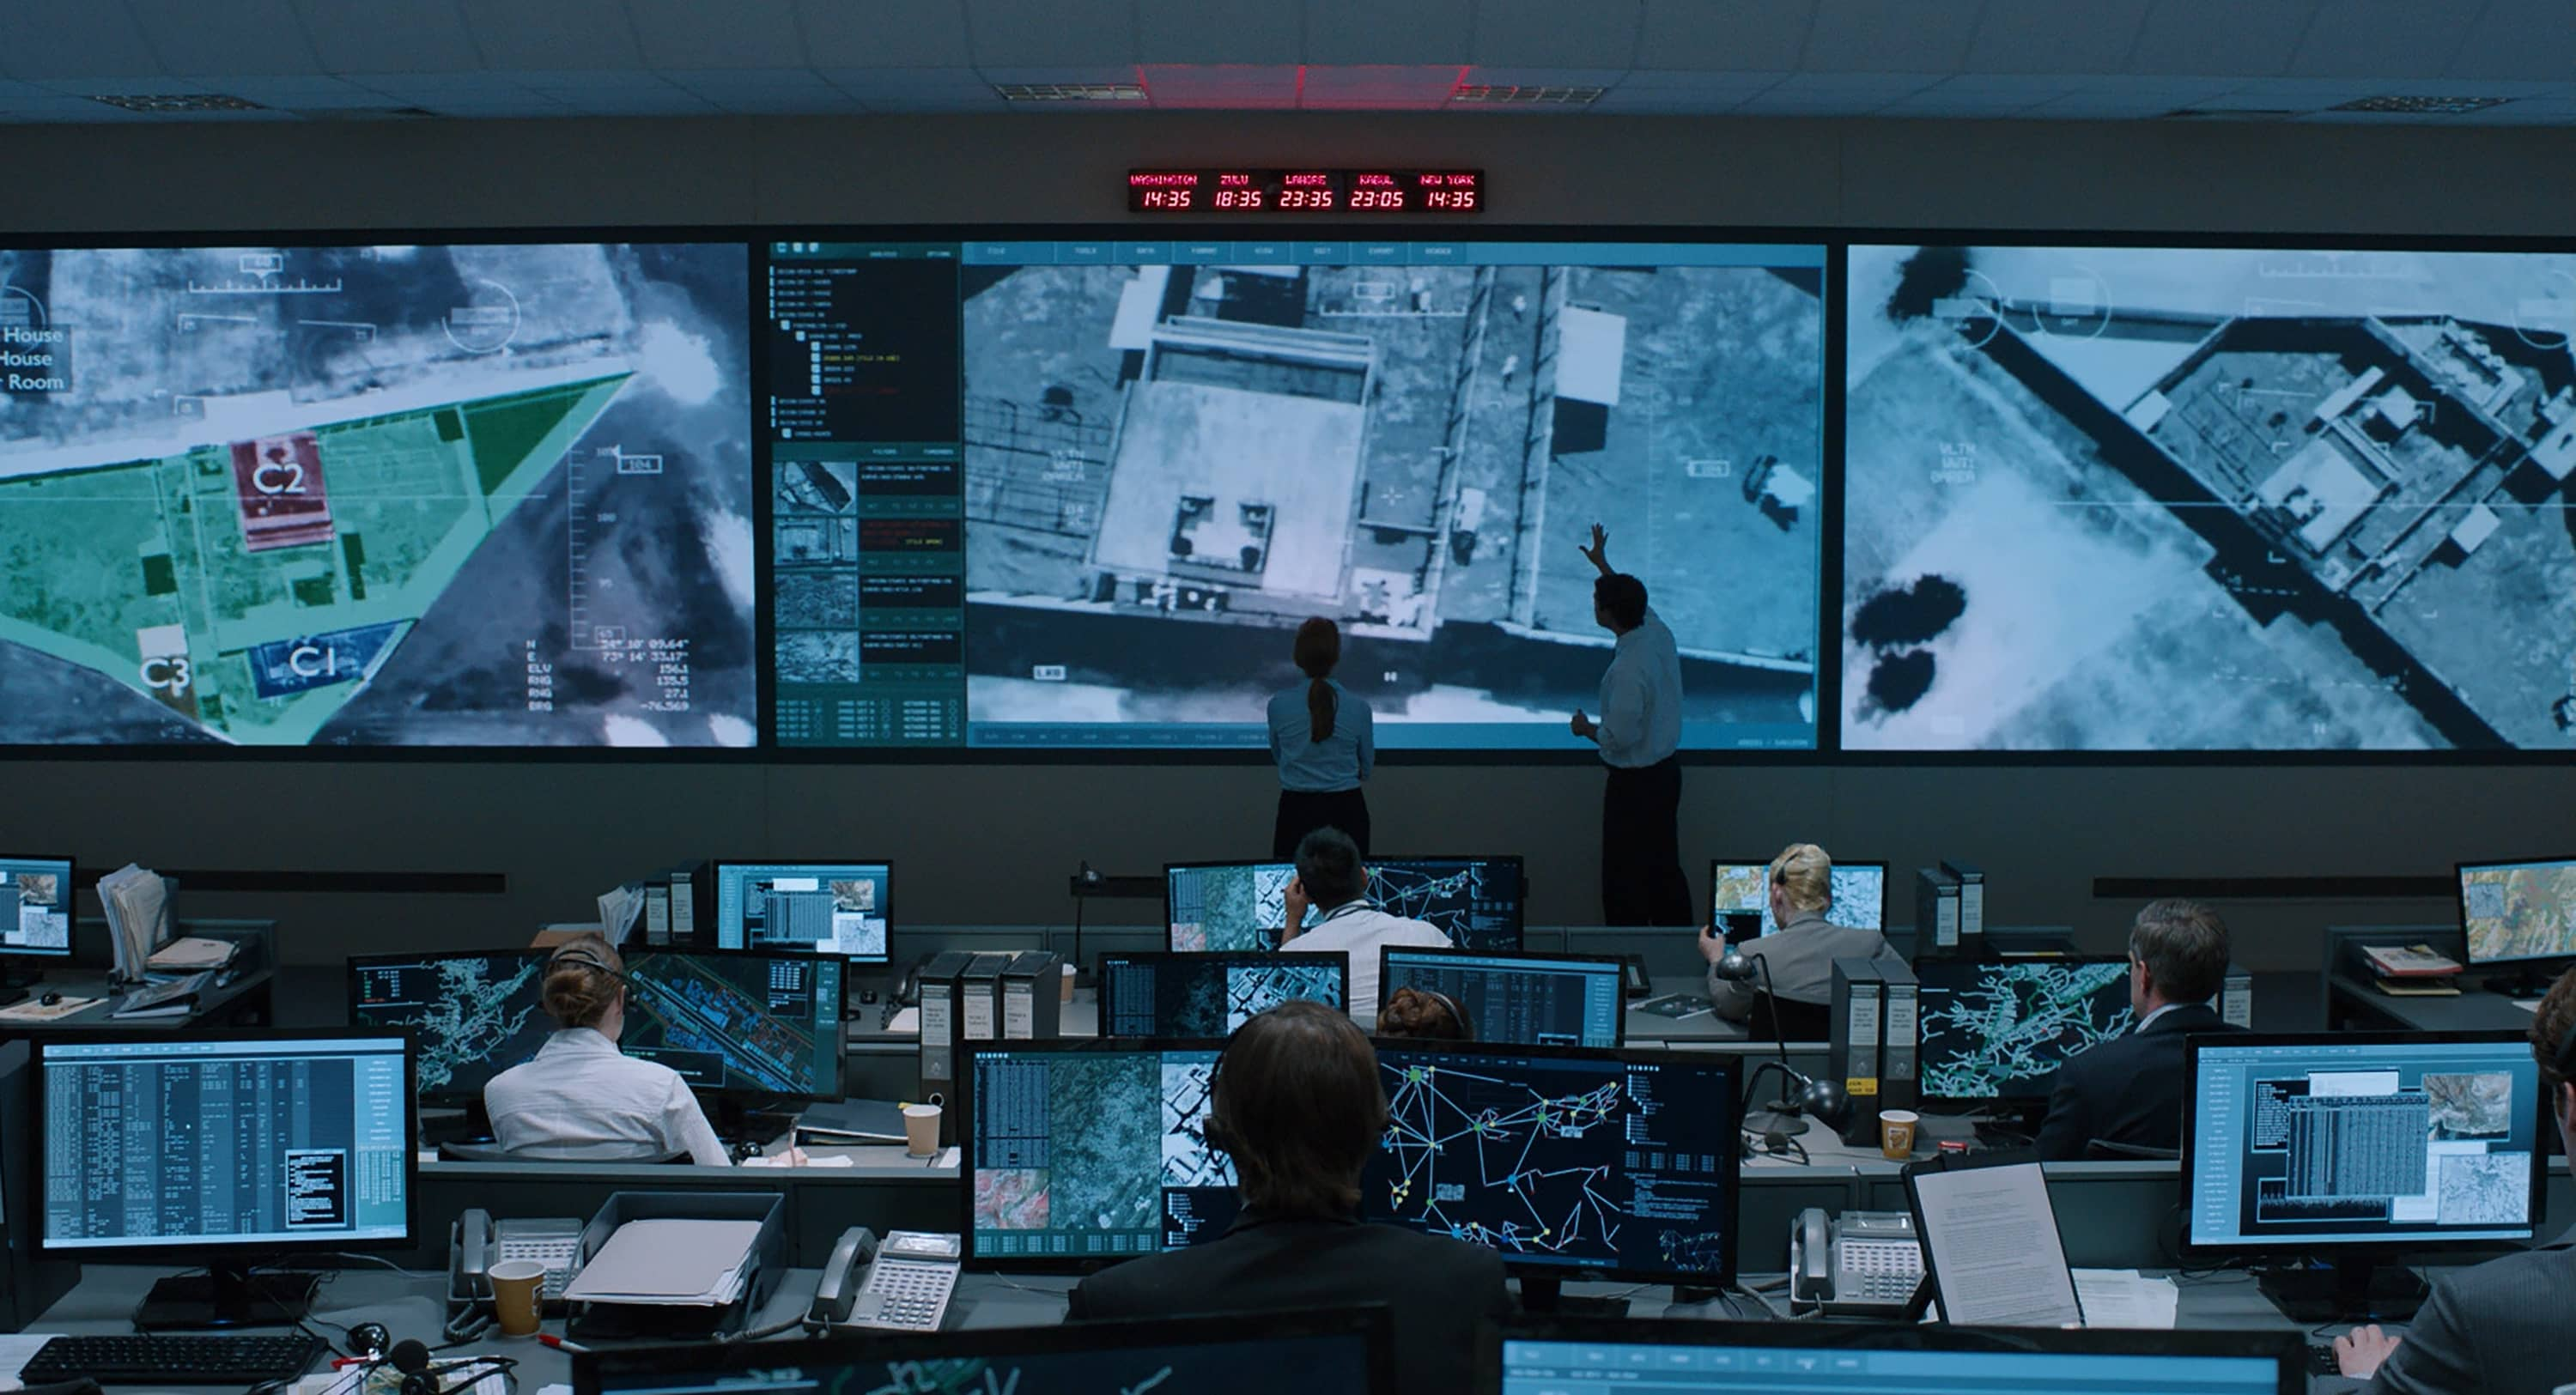 An active mission control room